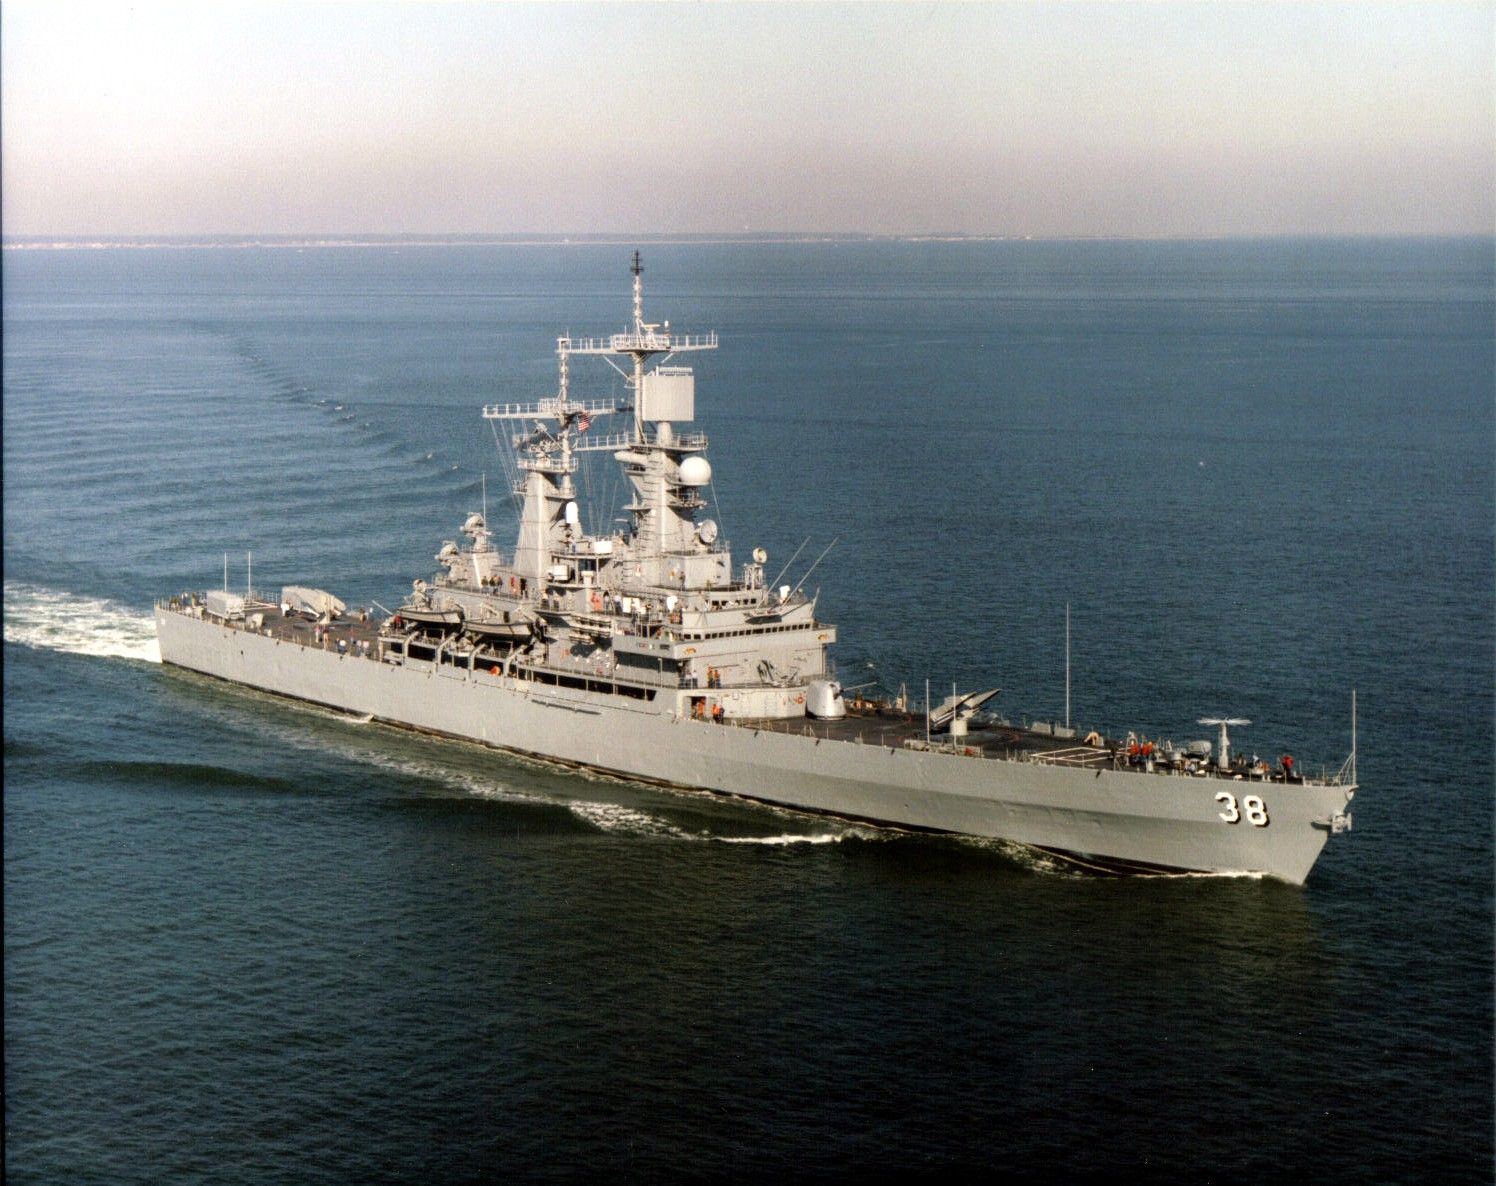 USS Virginia (CGN-38) was a nuclear-powered guided missile cruiser, the lead ship of her class, and the eighth ship of the United States Navy to be named for the Commonwealth of Virginia.